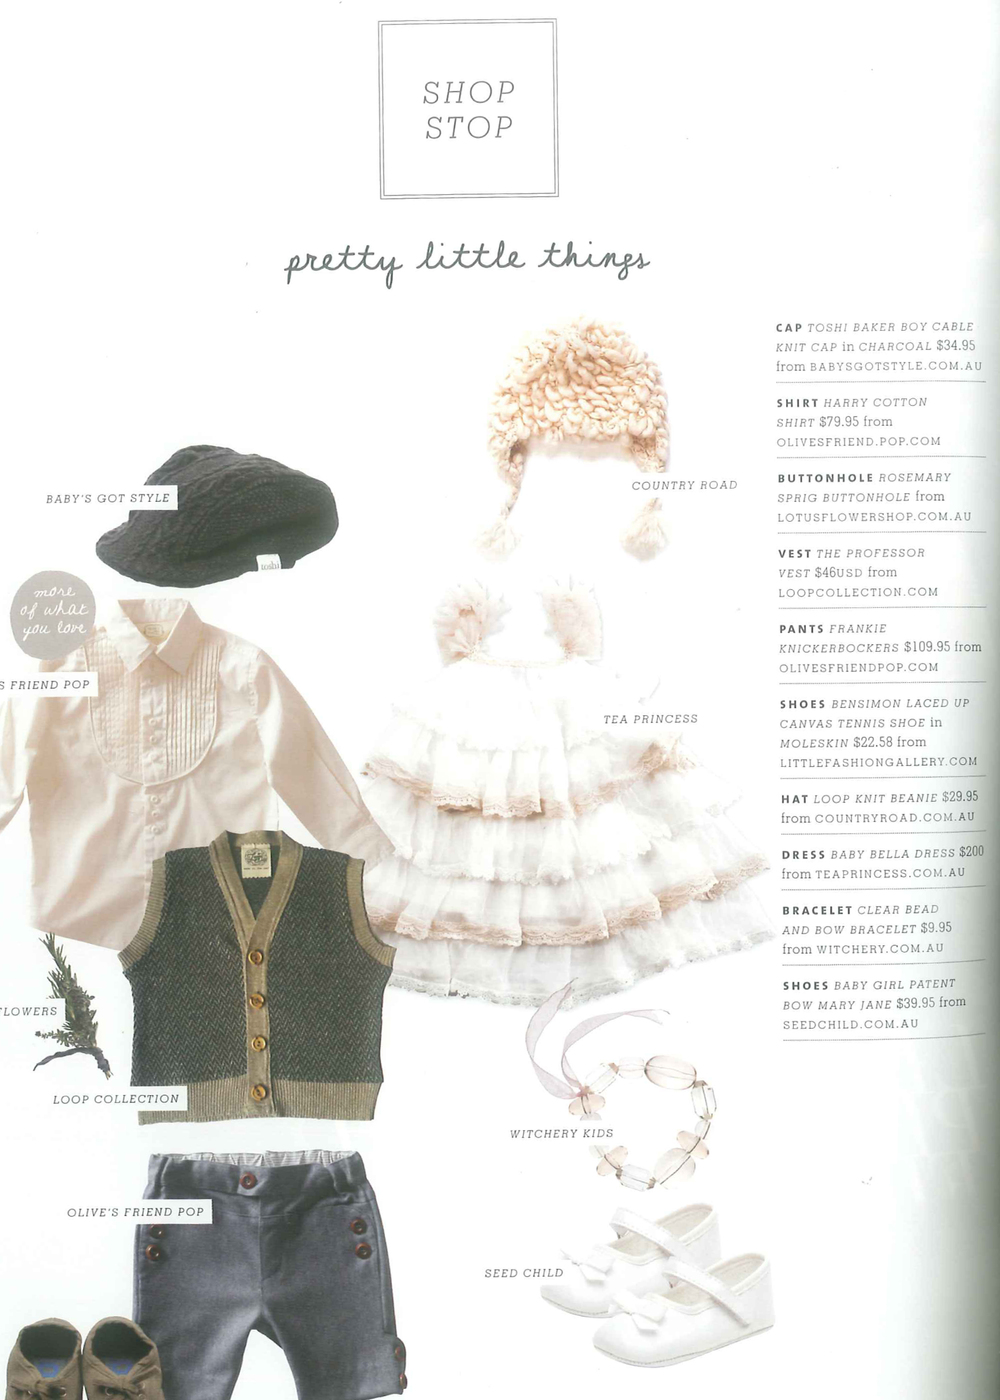 WEDDING STYLE GUIDE MAGAZINE